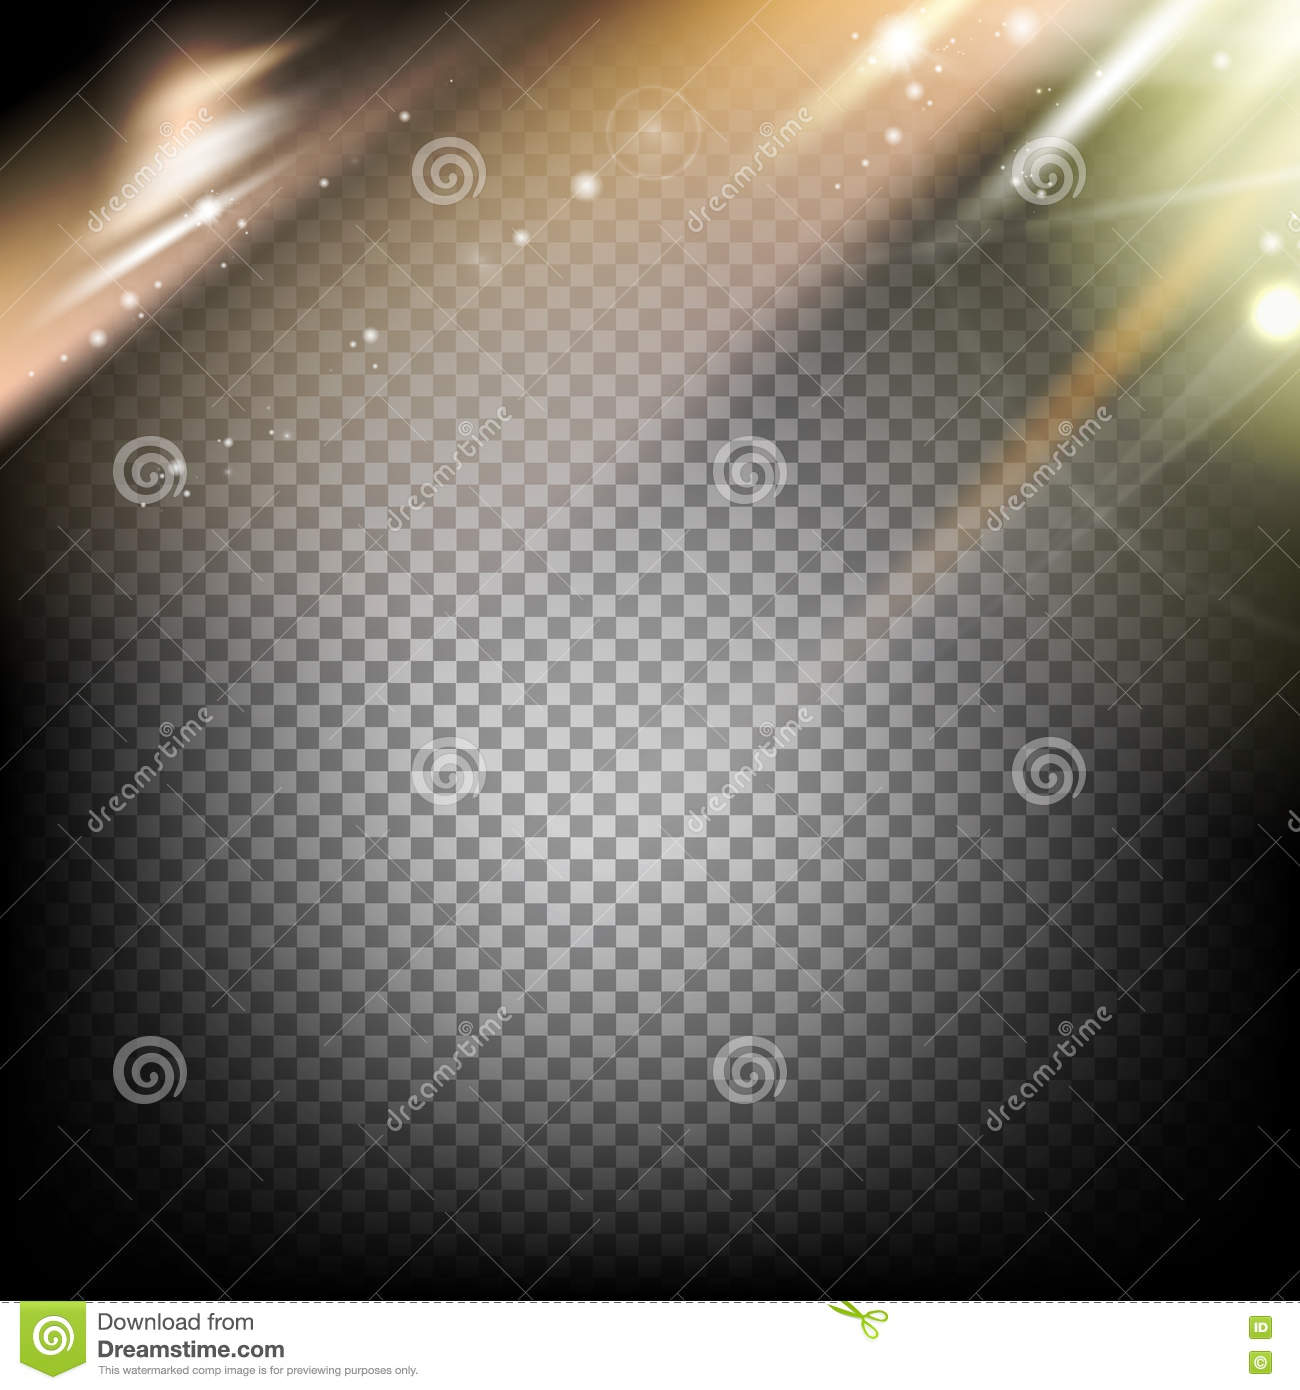 Abstract dark background.